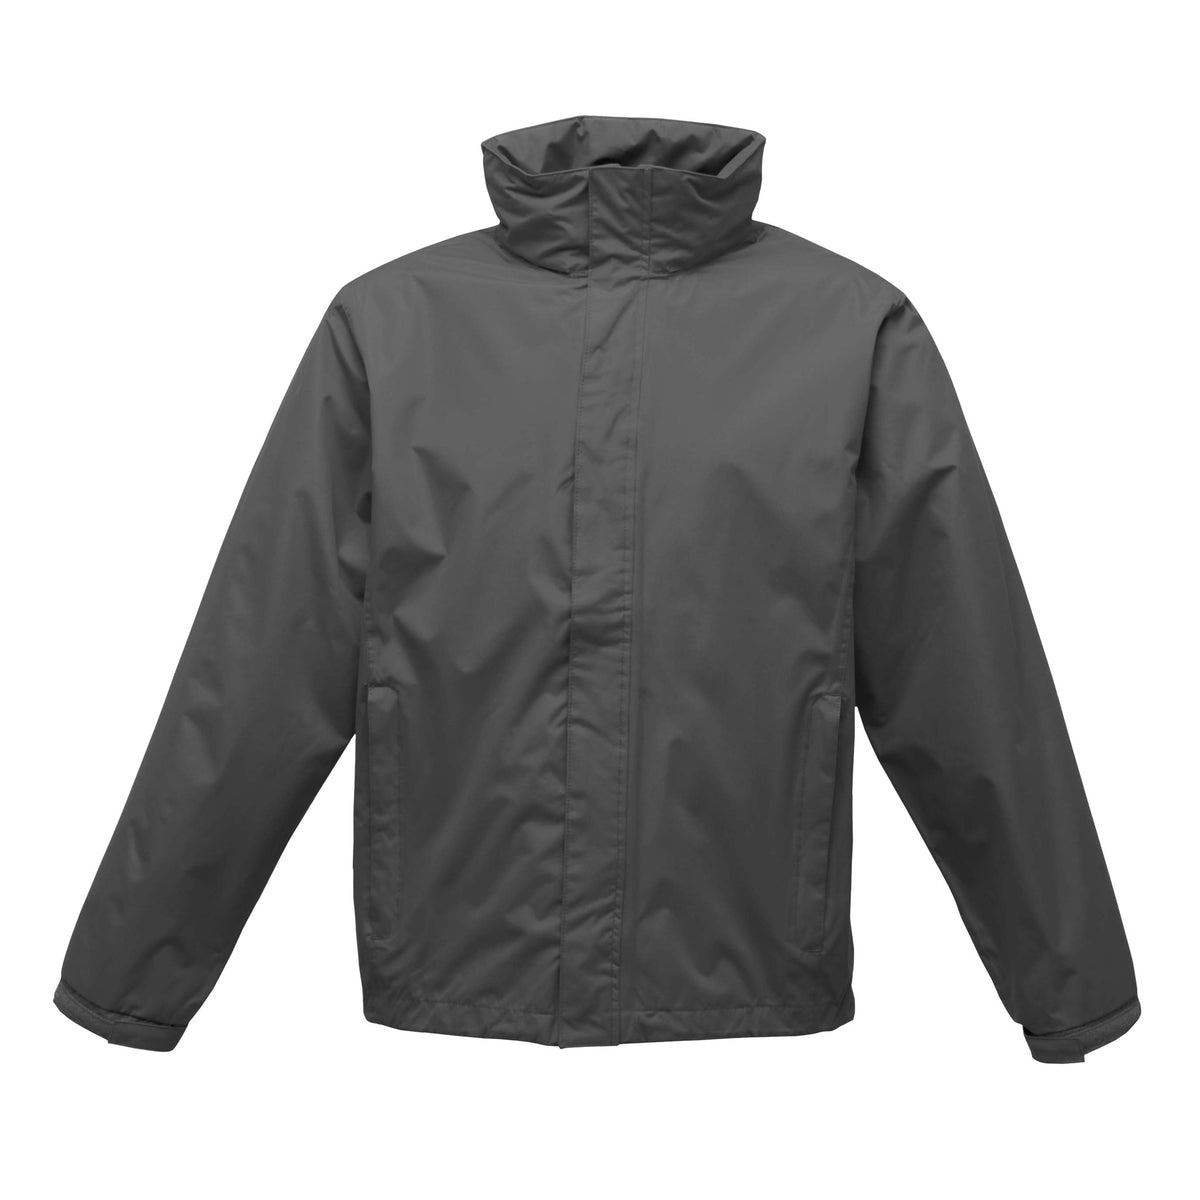 Regatta Pace II Jacket - peterdrew.com  - 5